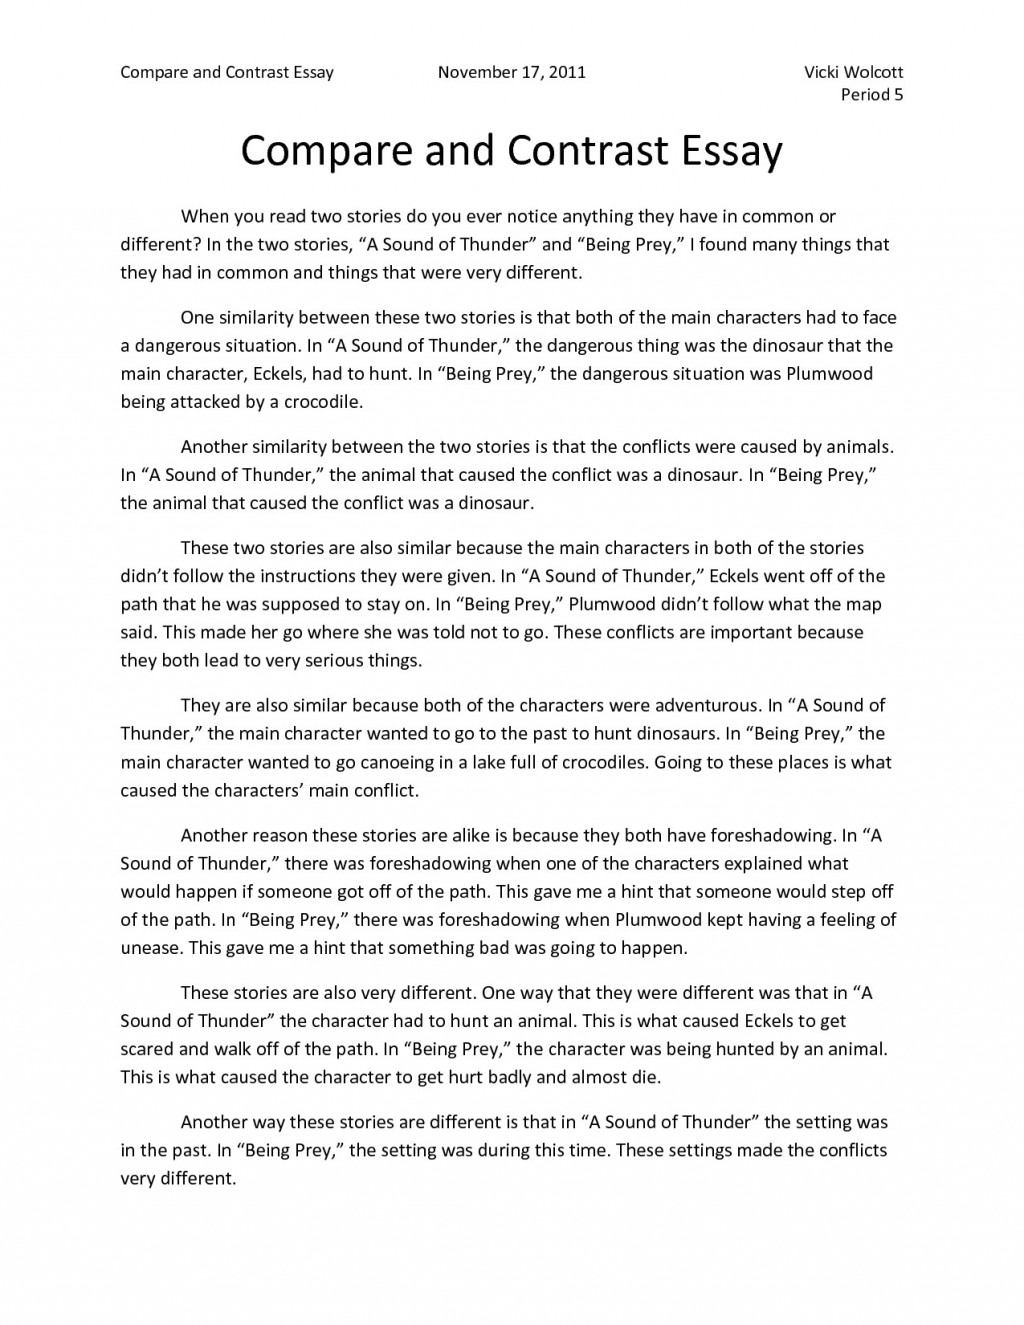 006 Comparing And Contrasting Essay Example Satire Examples Of Comparison Contrast Essays Com How To Write Outstanding A Compare Outline Ppt Middle School Large